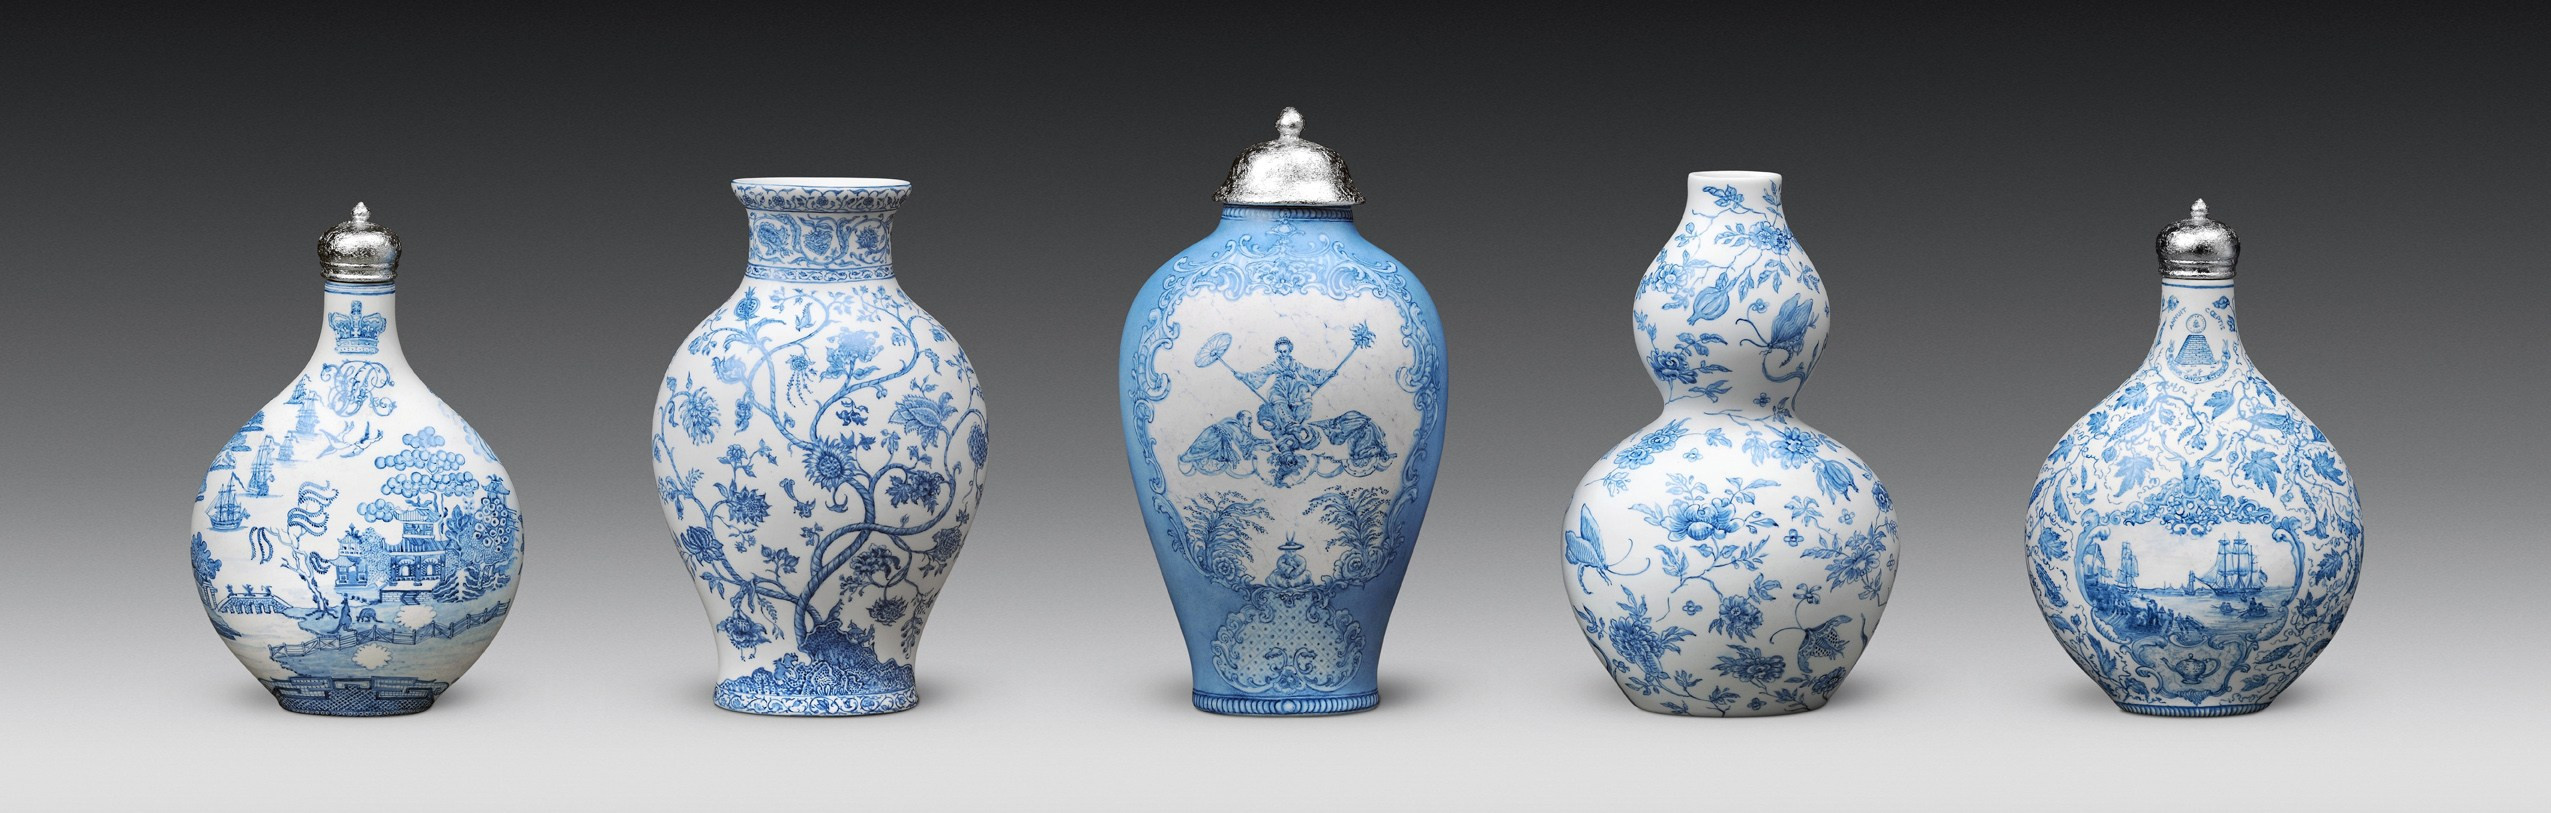 blue and white vases and urns of new blue and white ferrin contemporary throughout robin best the british east india company trade and war 2012